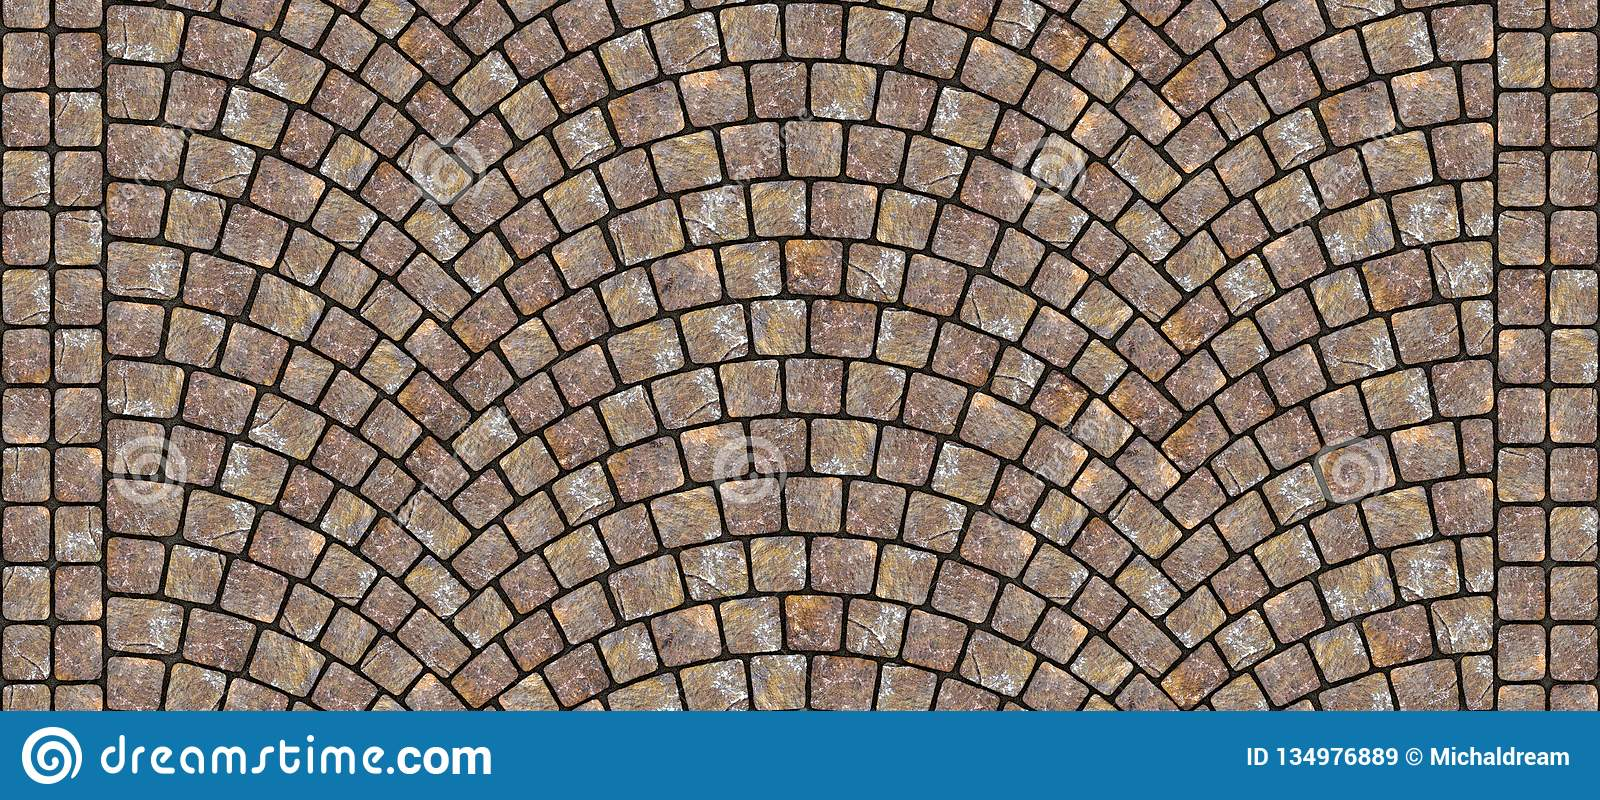 . Road Curved Cobblestone Texture 057 Stock Illustration